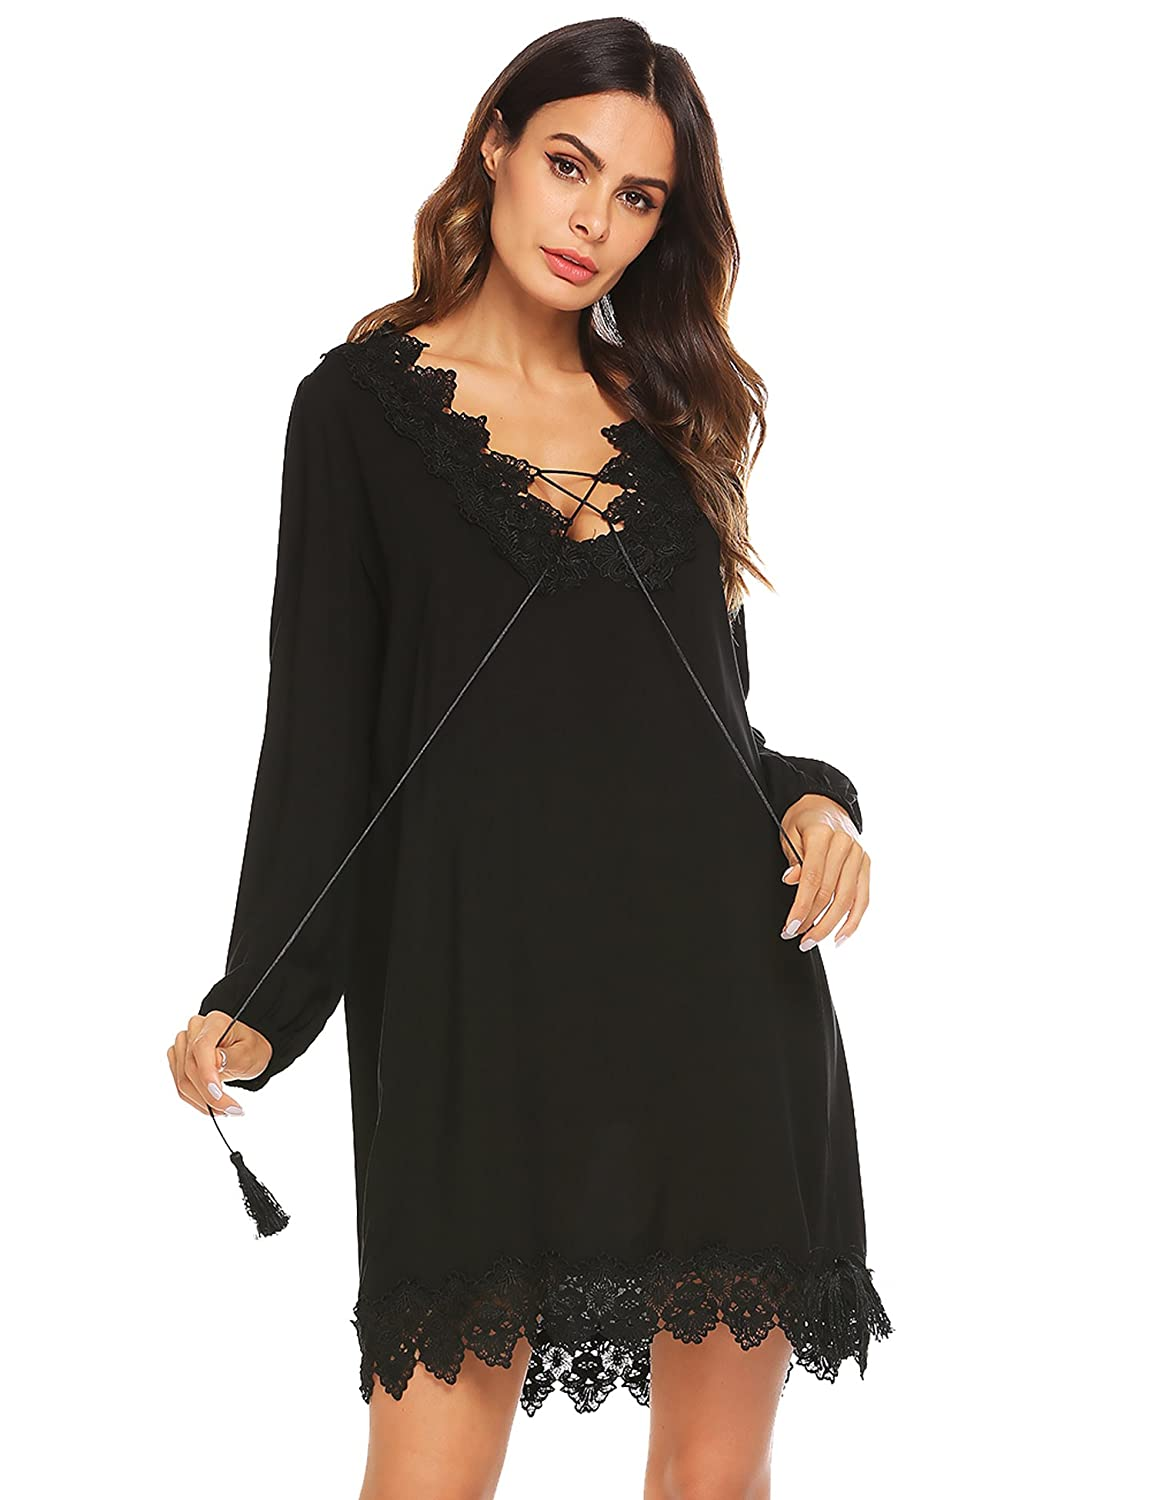 0325354795 Casual Loose Fit Shirt Cover Up Dress: 100%Cotton,fabric is stretchy and  soft. Trust me , this a quality cover up.Lace Patchwork Casual Loose Bikini  Cover ...